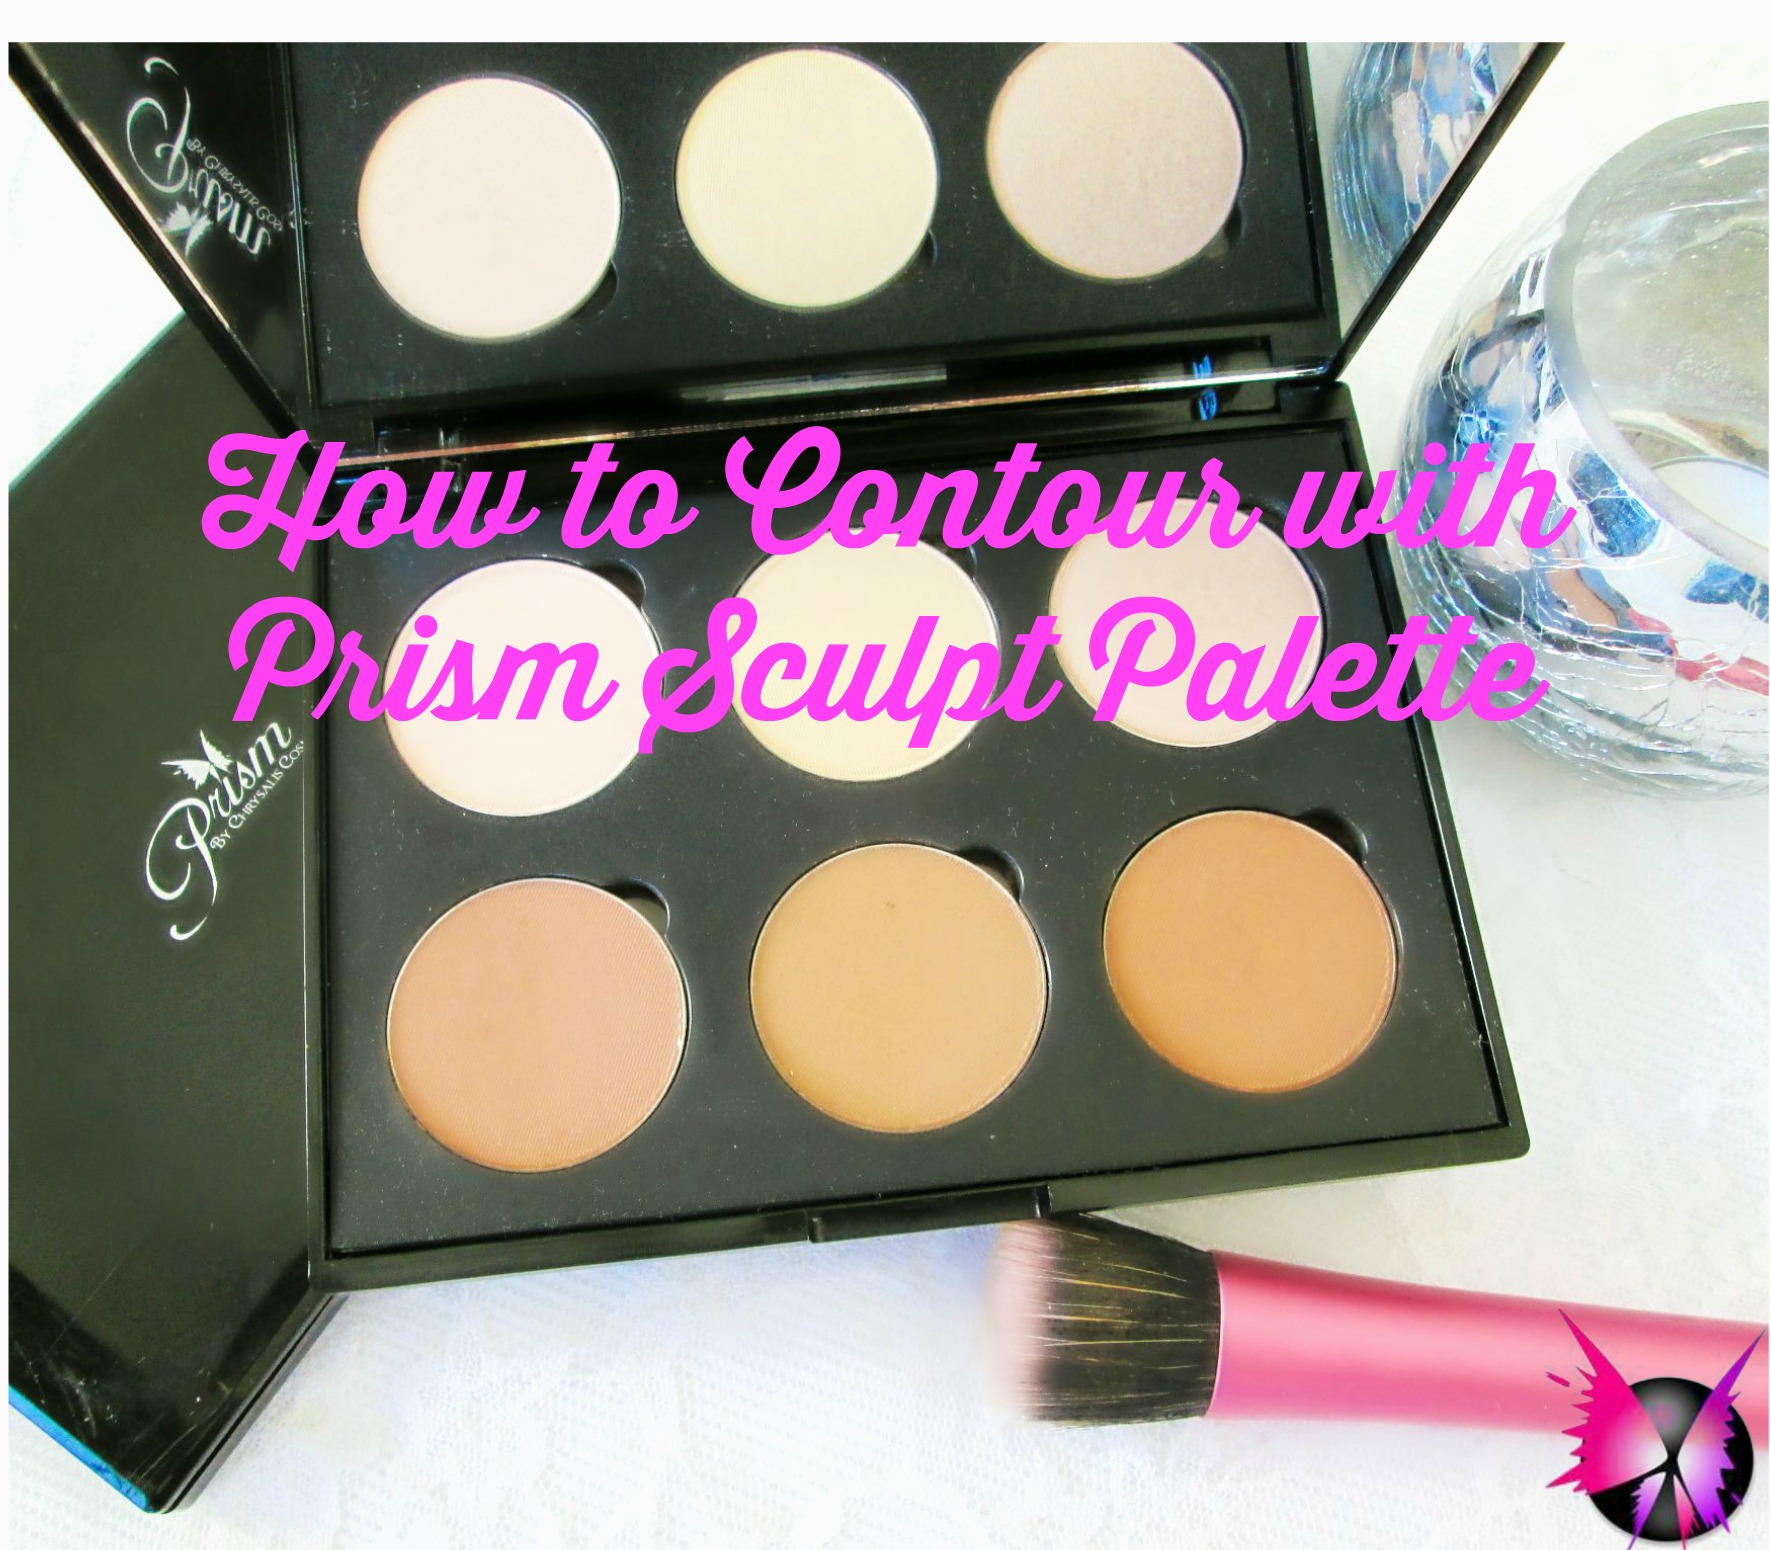 How to Contour and Highlight With The Prism Sculpt Palette